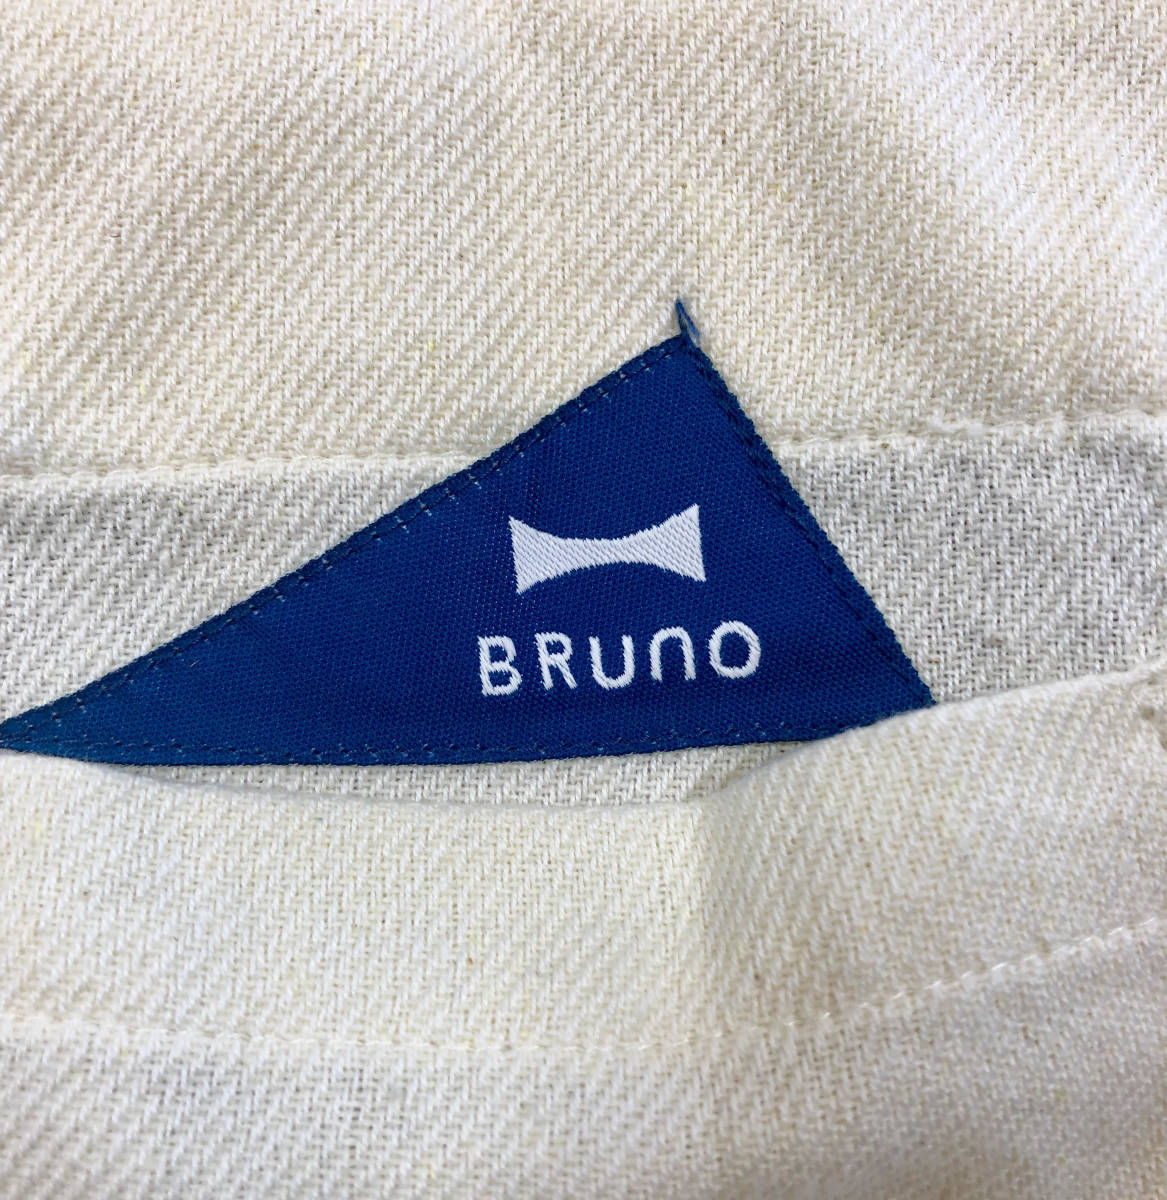 Up of the apron tag